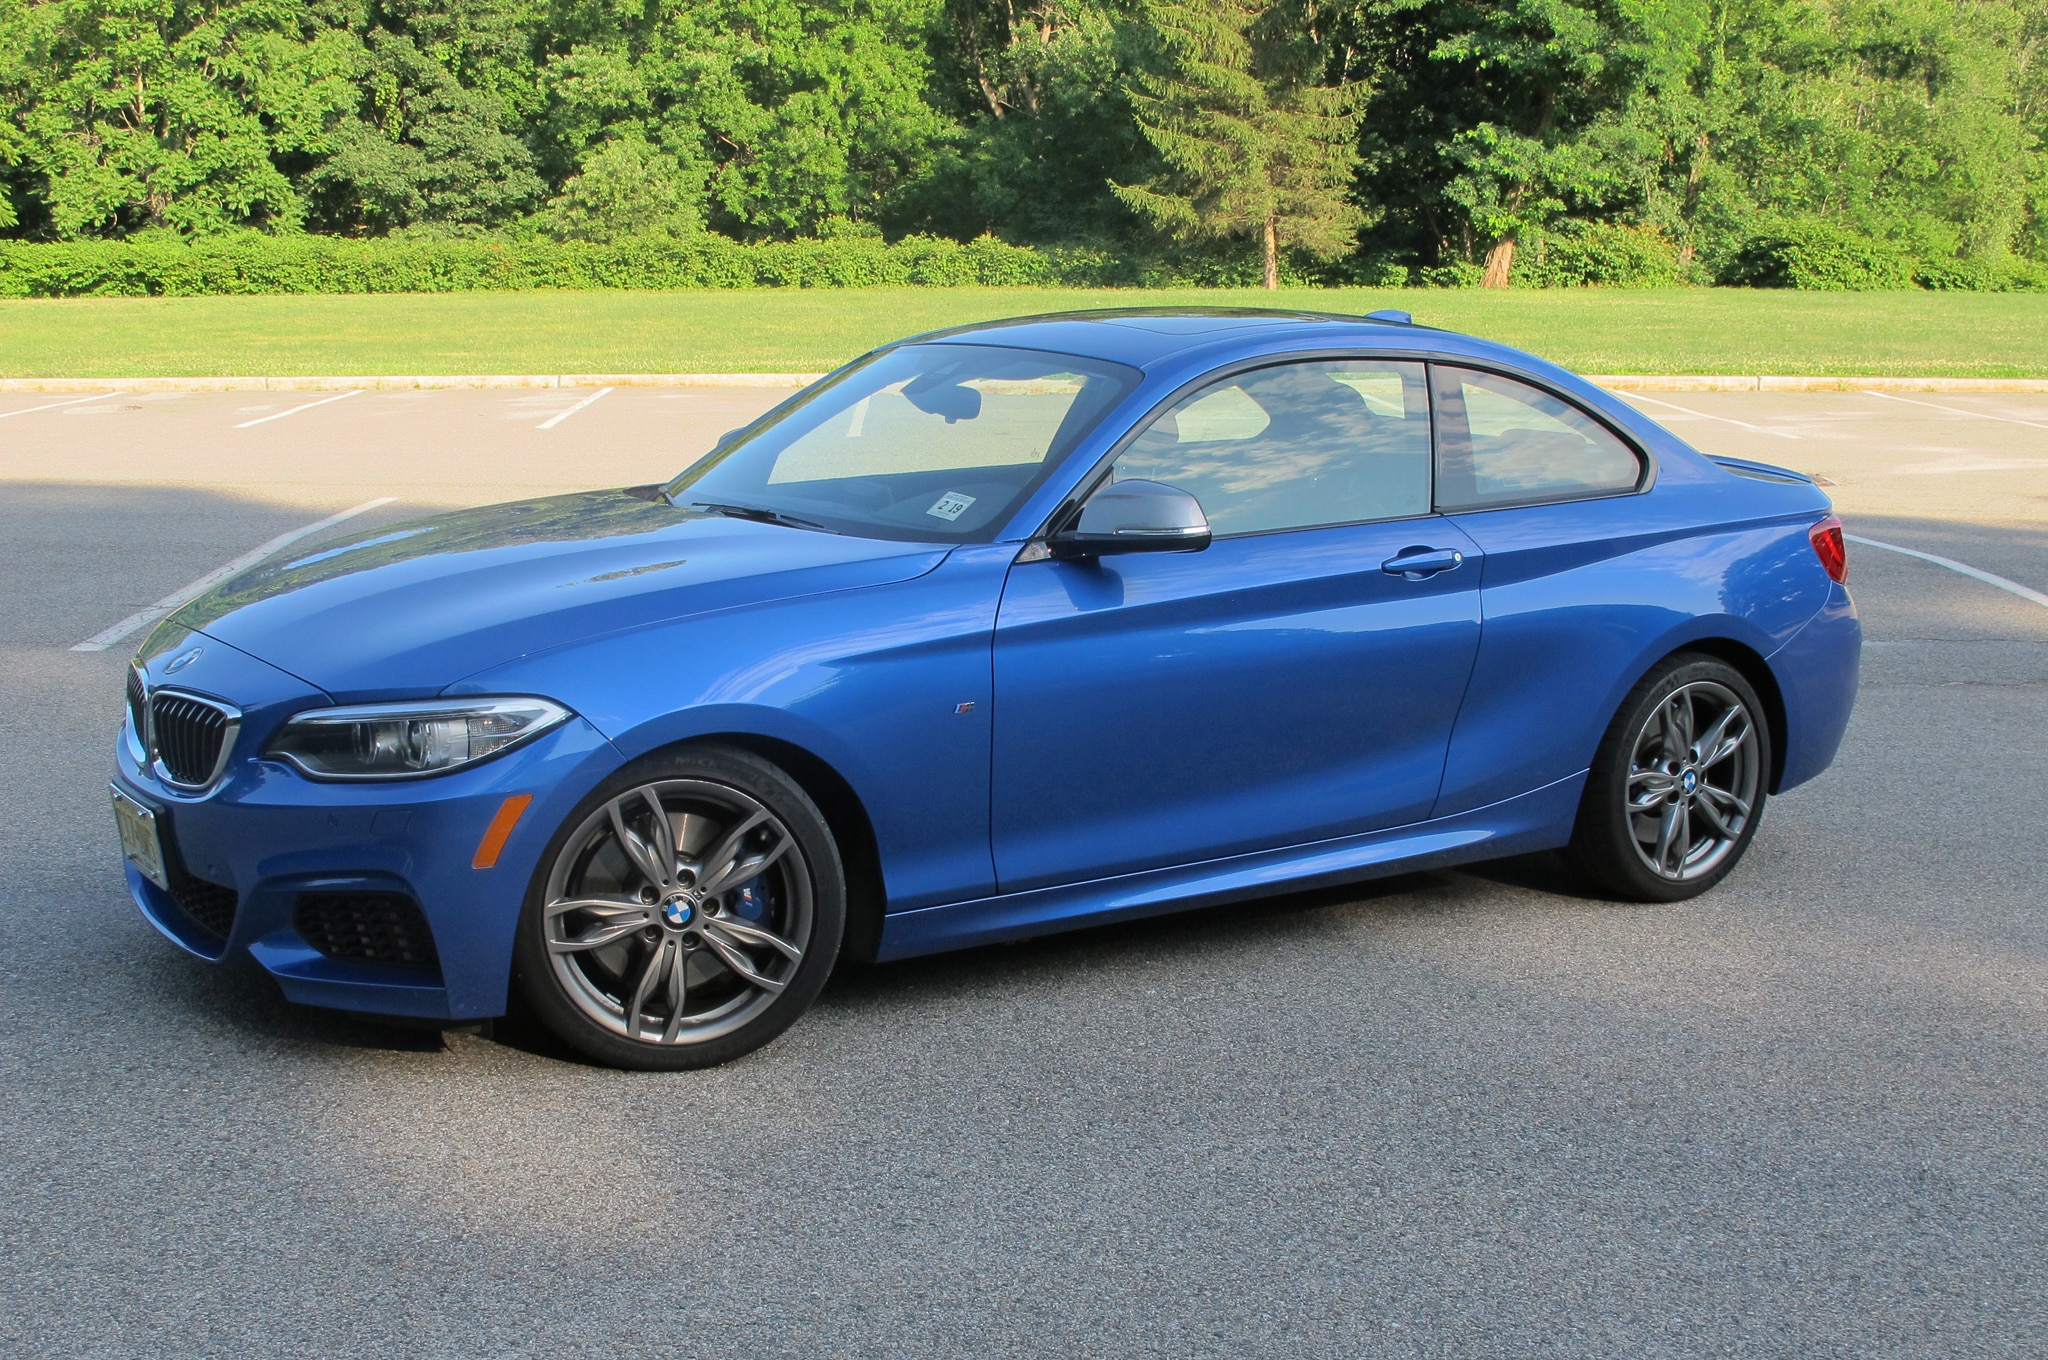 2014 BMW M235i Front Three Quarter 05